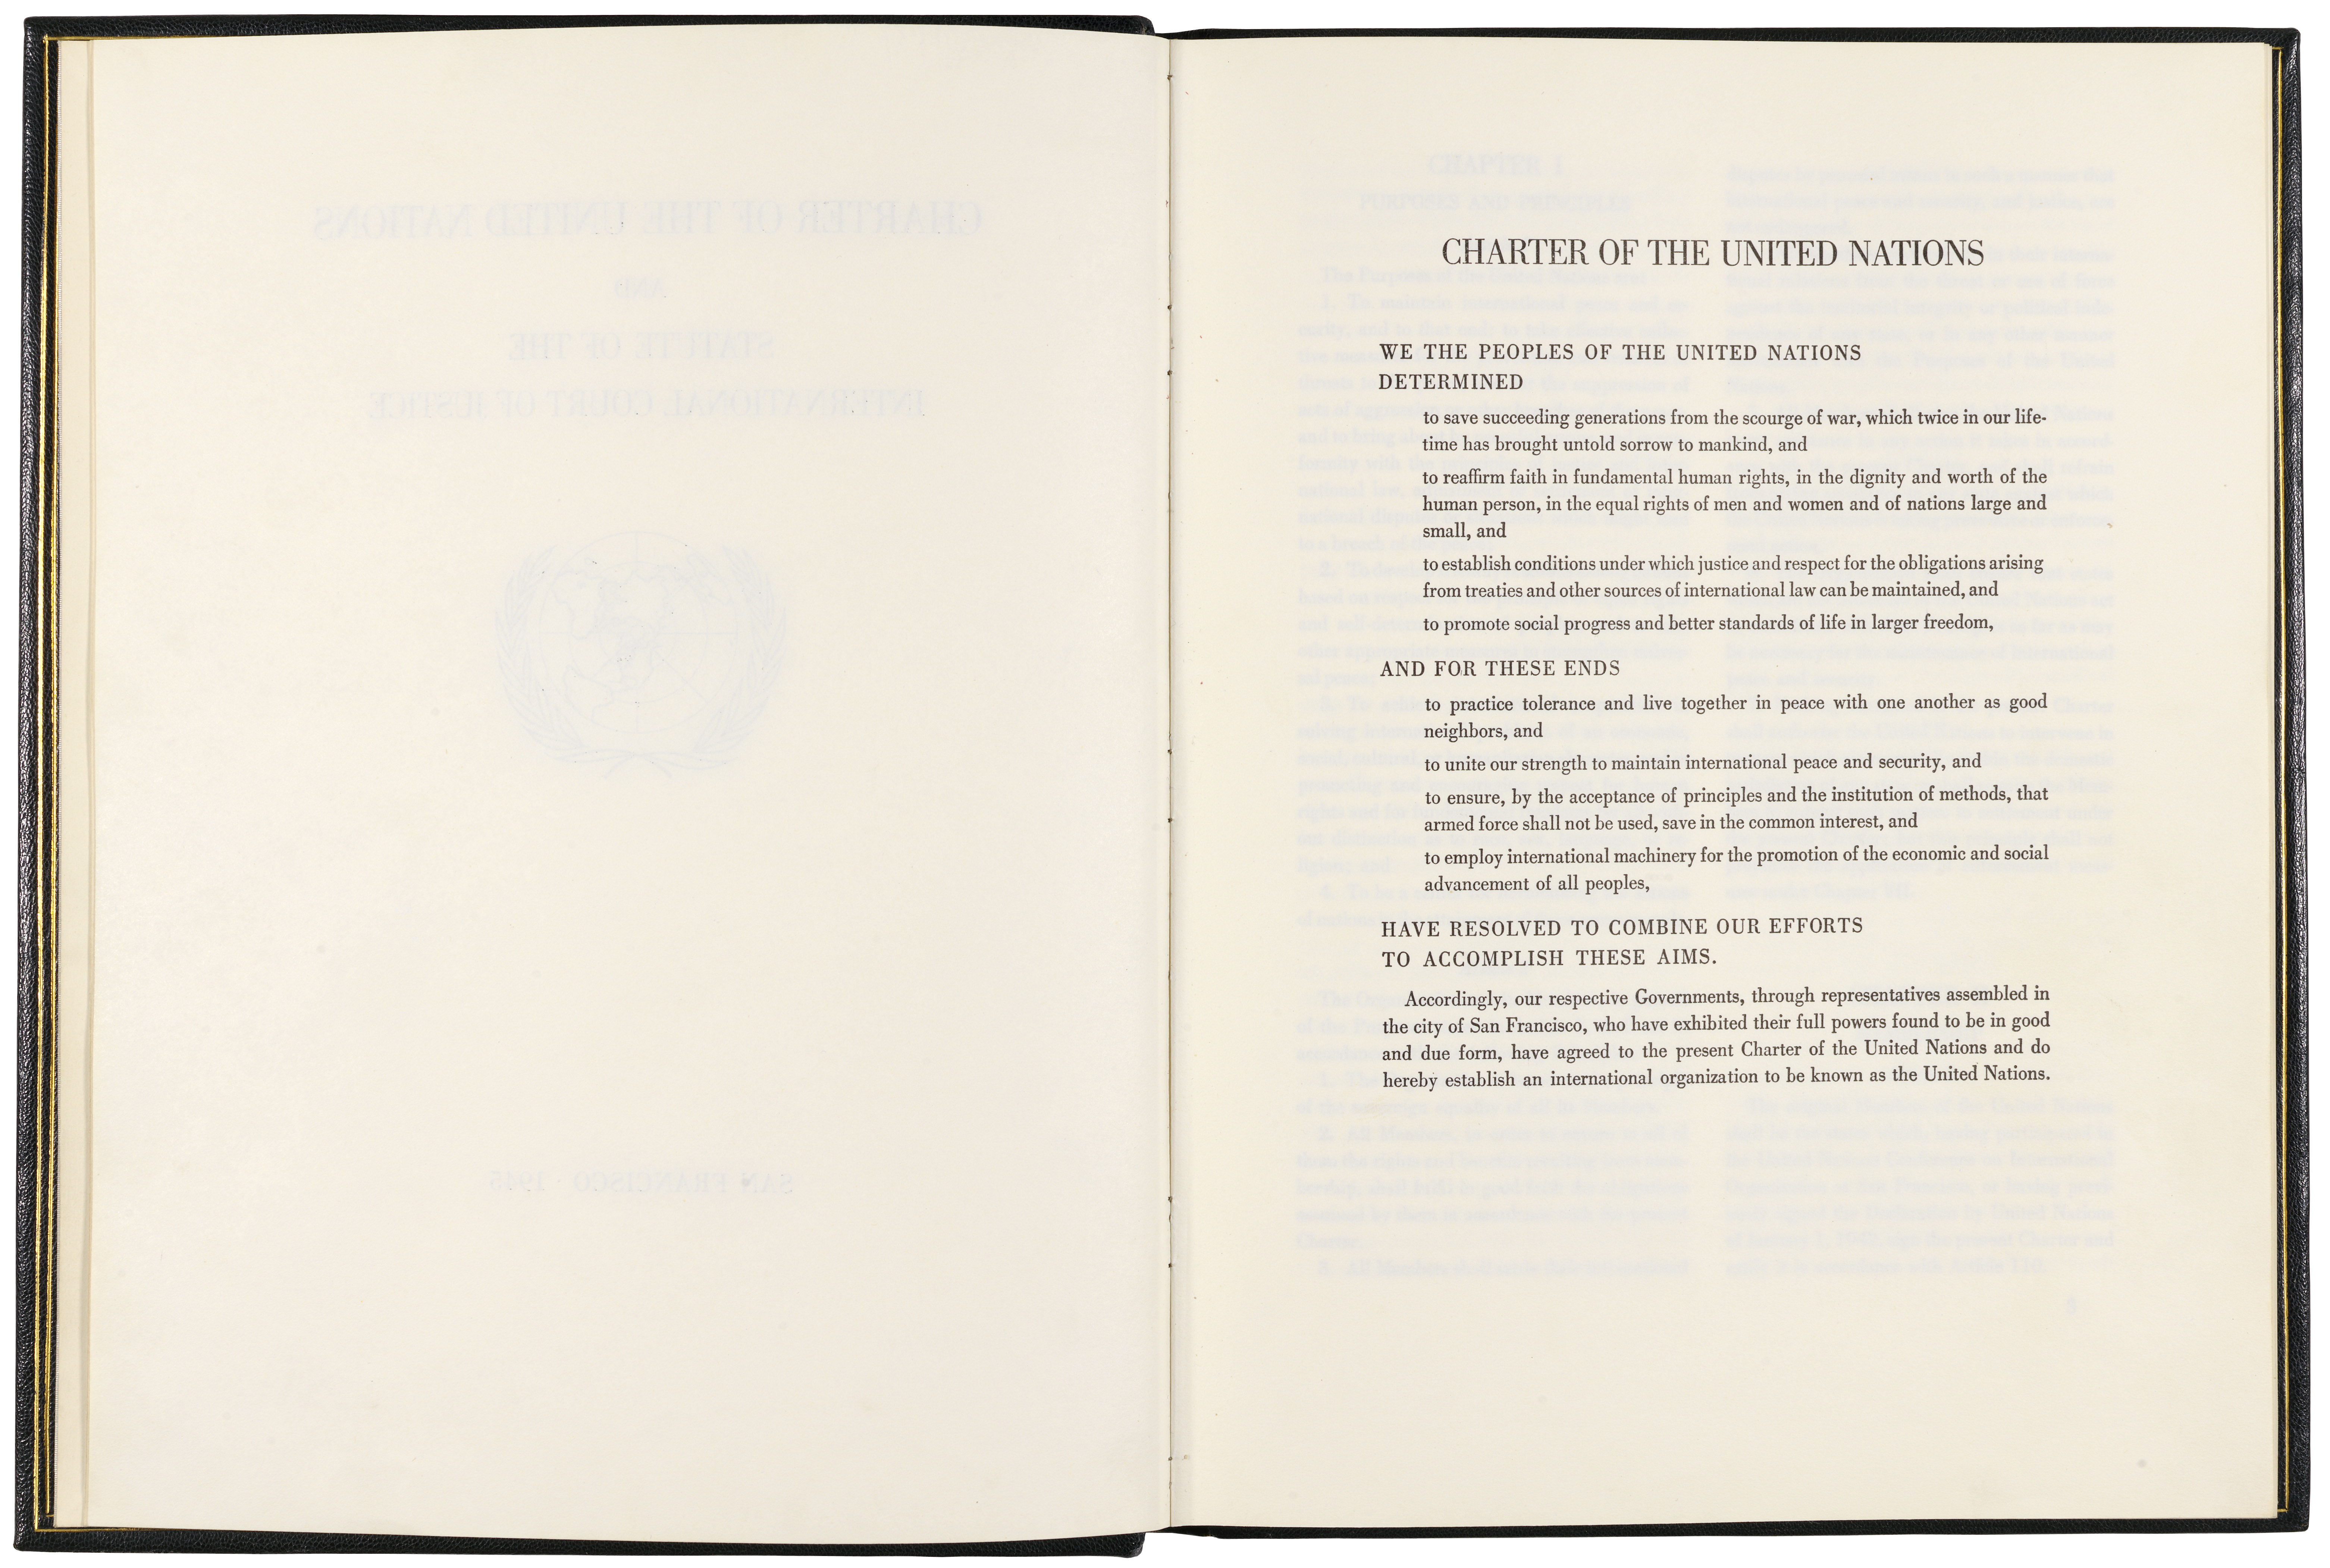 United Nations Charter, page 1